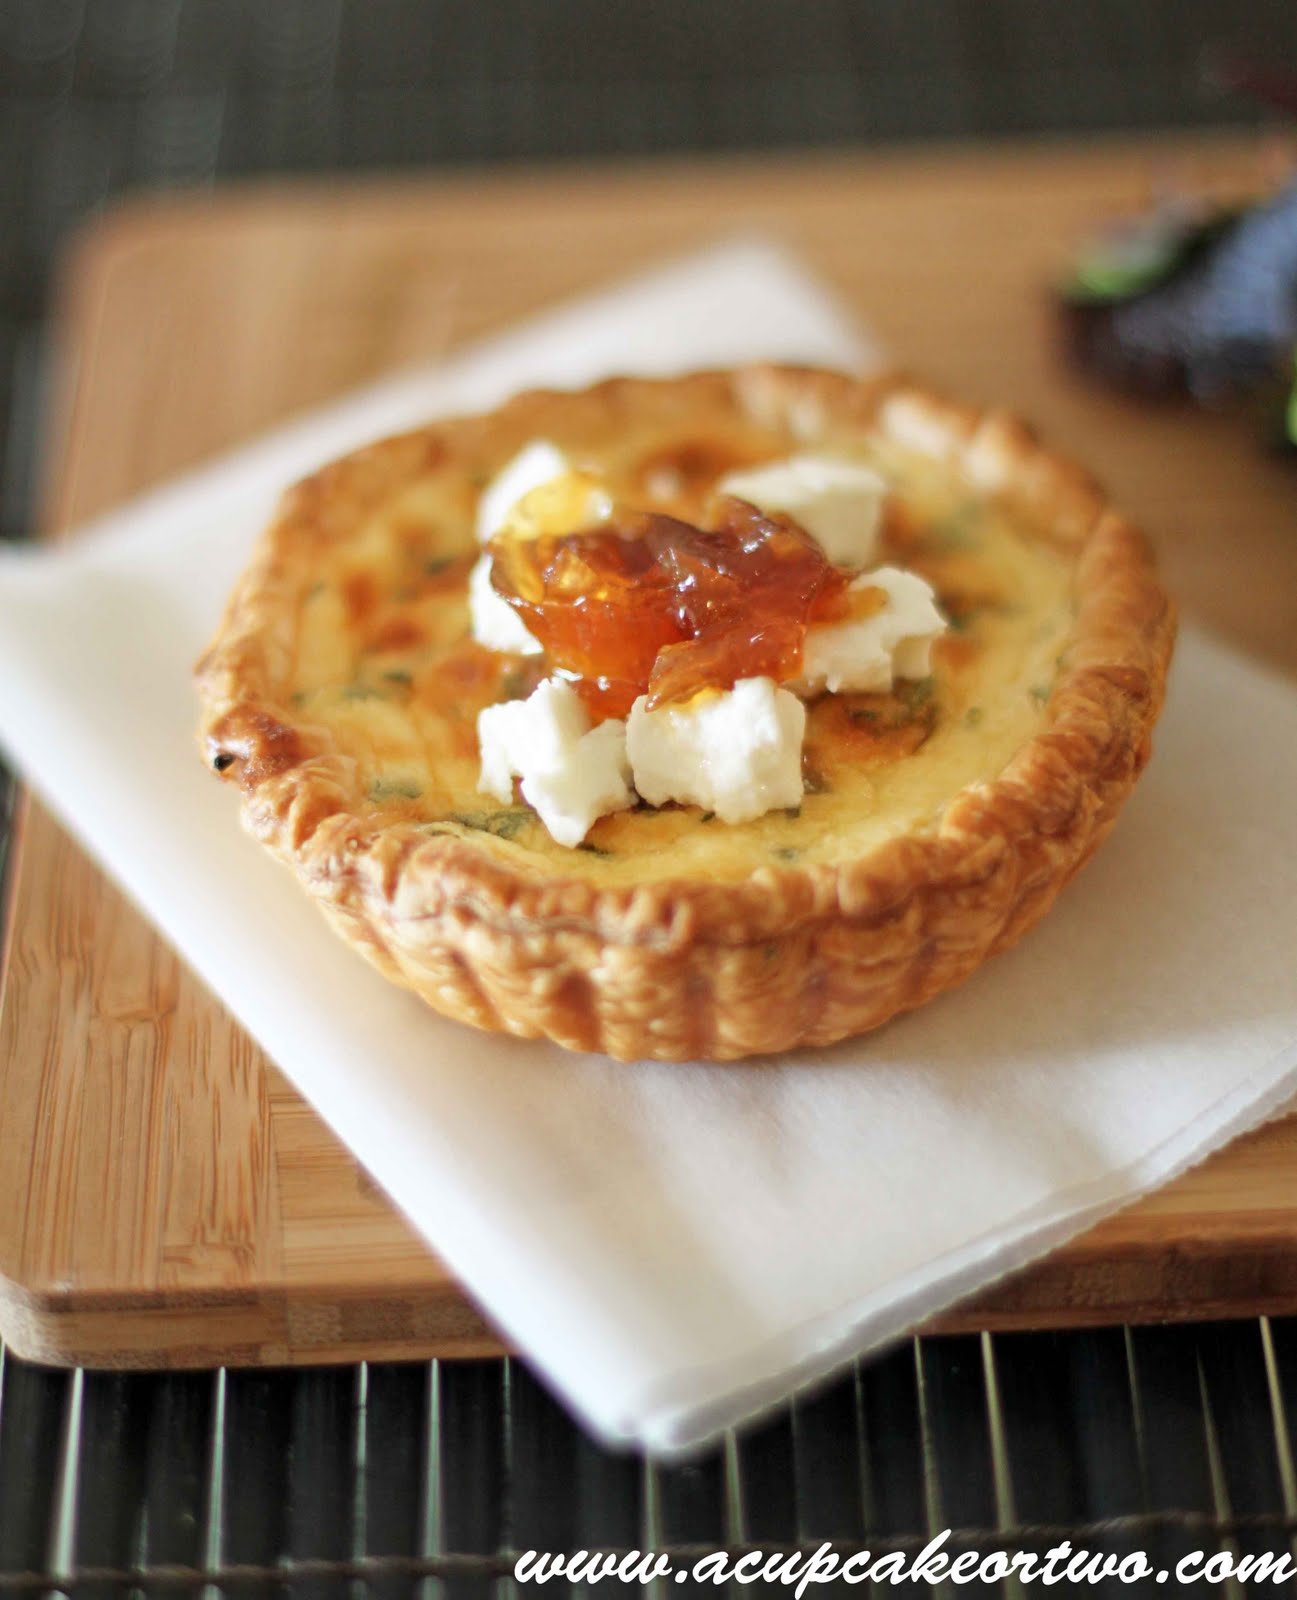 ... about anything. These Goat's cheese tarts are simple and moreish